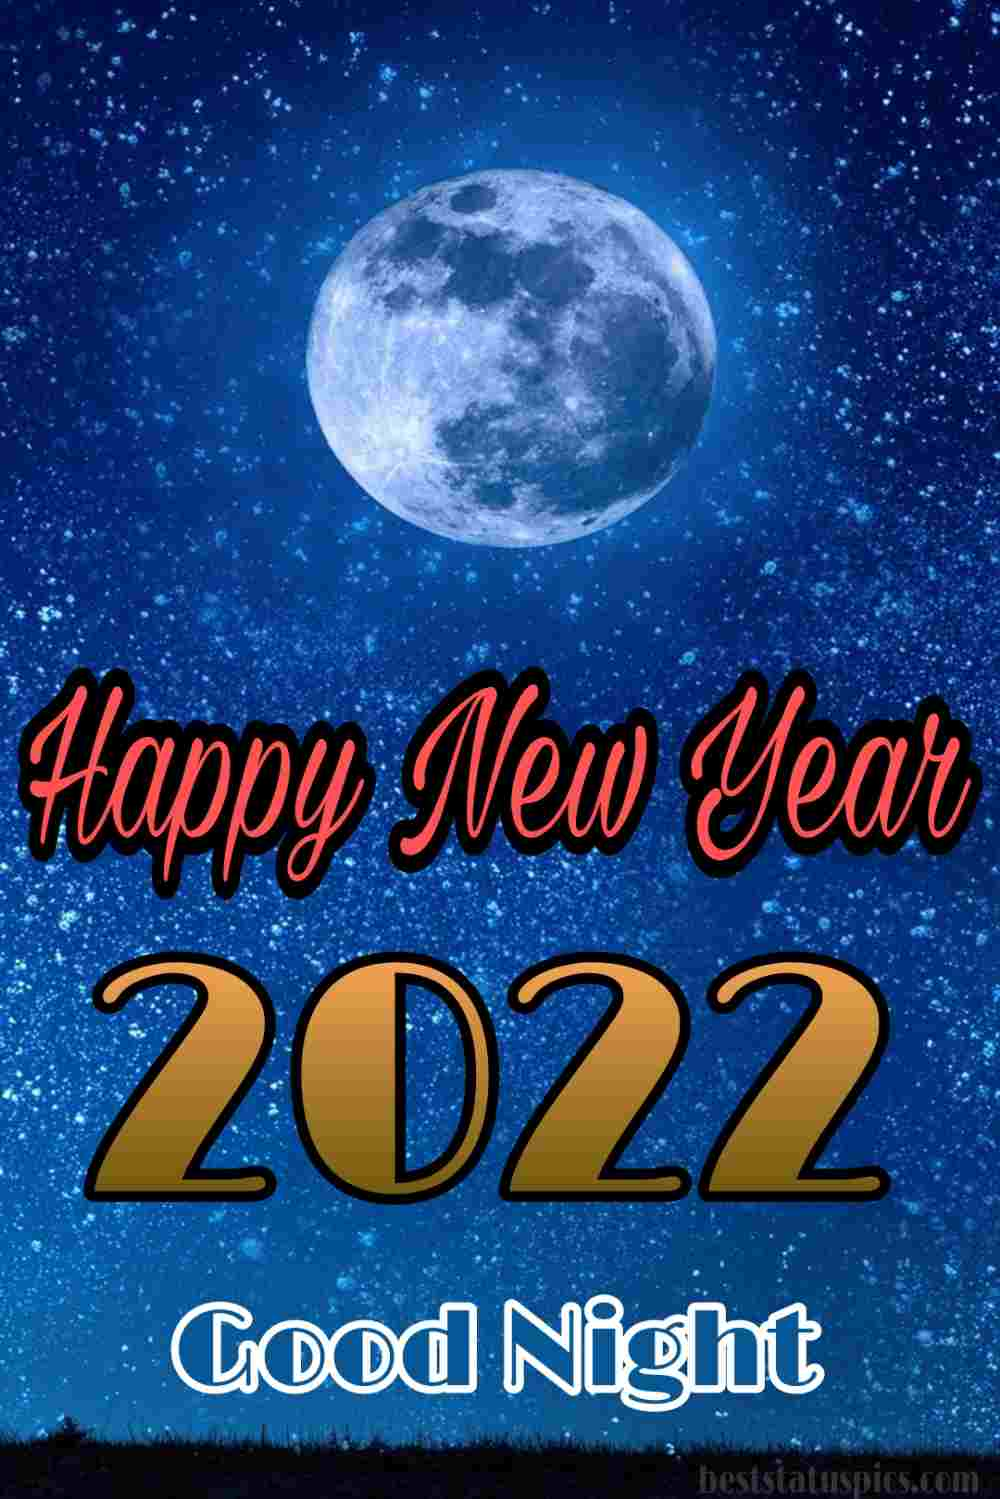 Happy new year 2022 and Good night HD images with moon, stars and night sky for best friend and lover